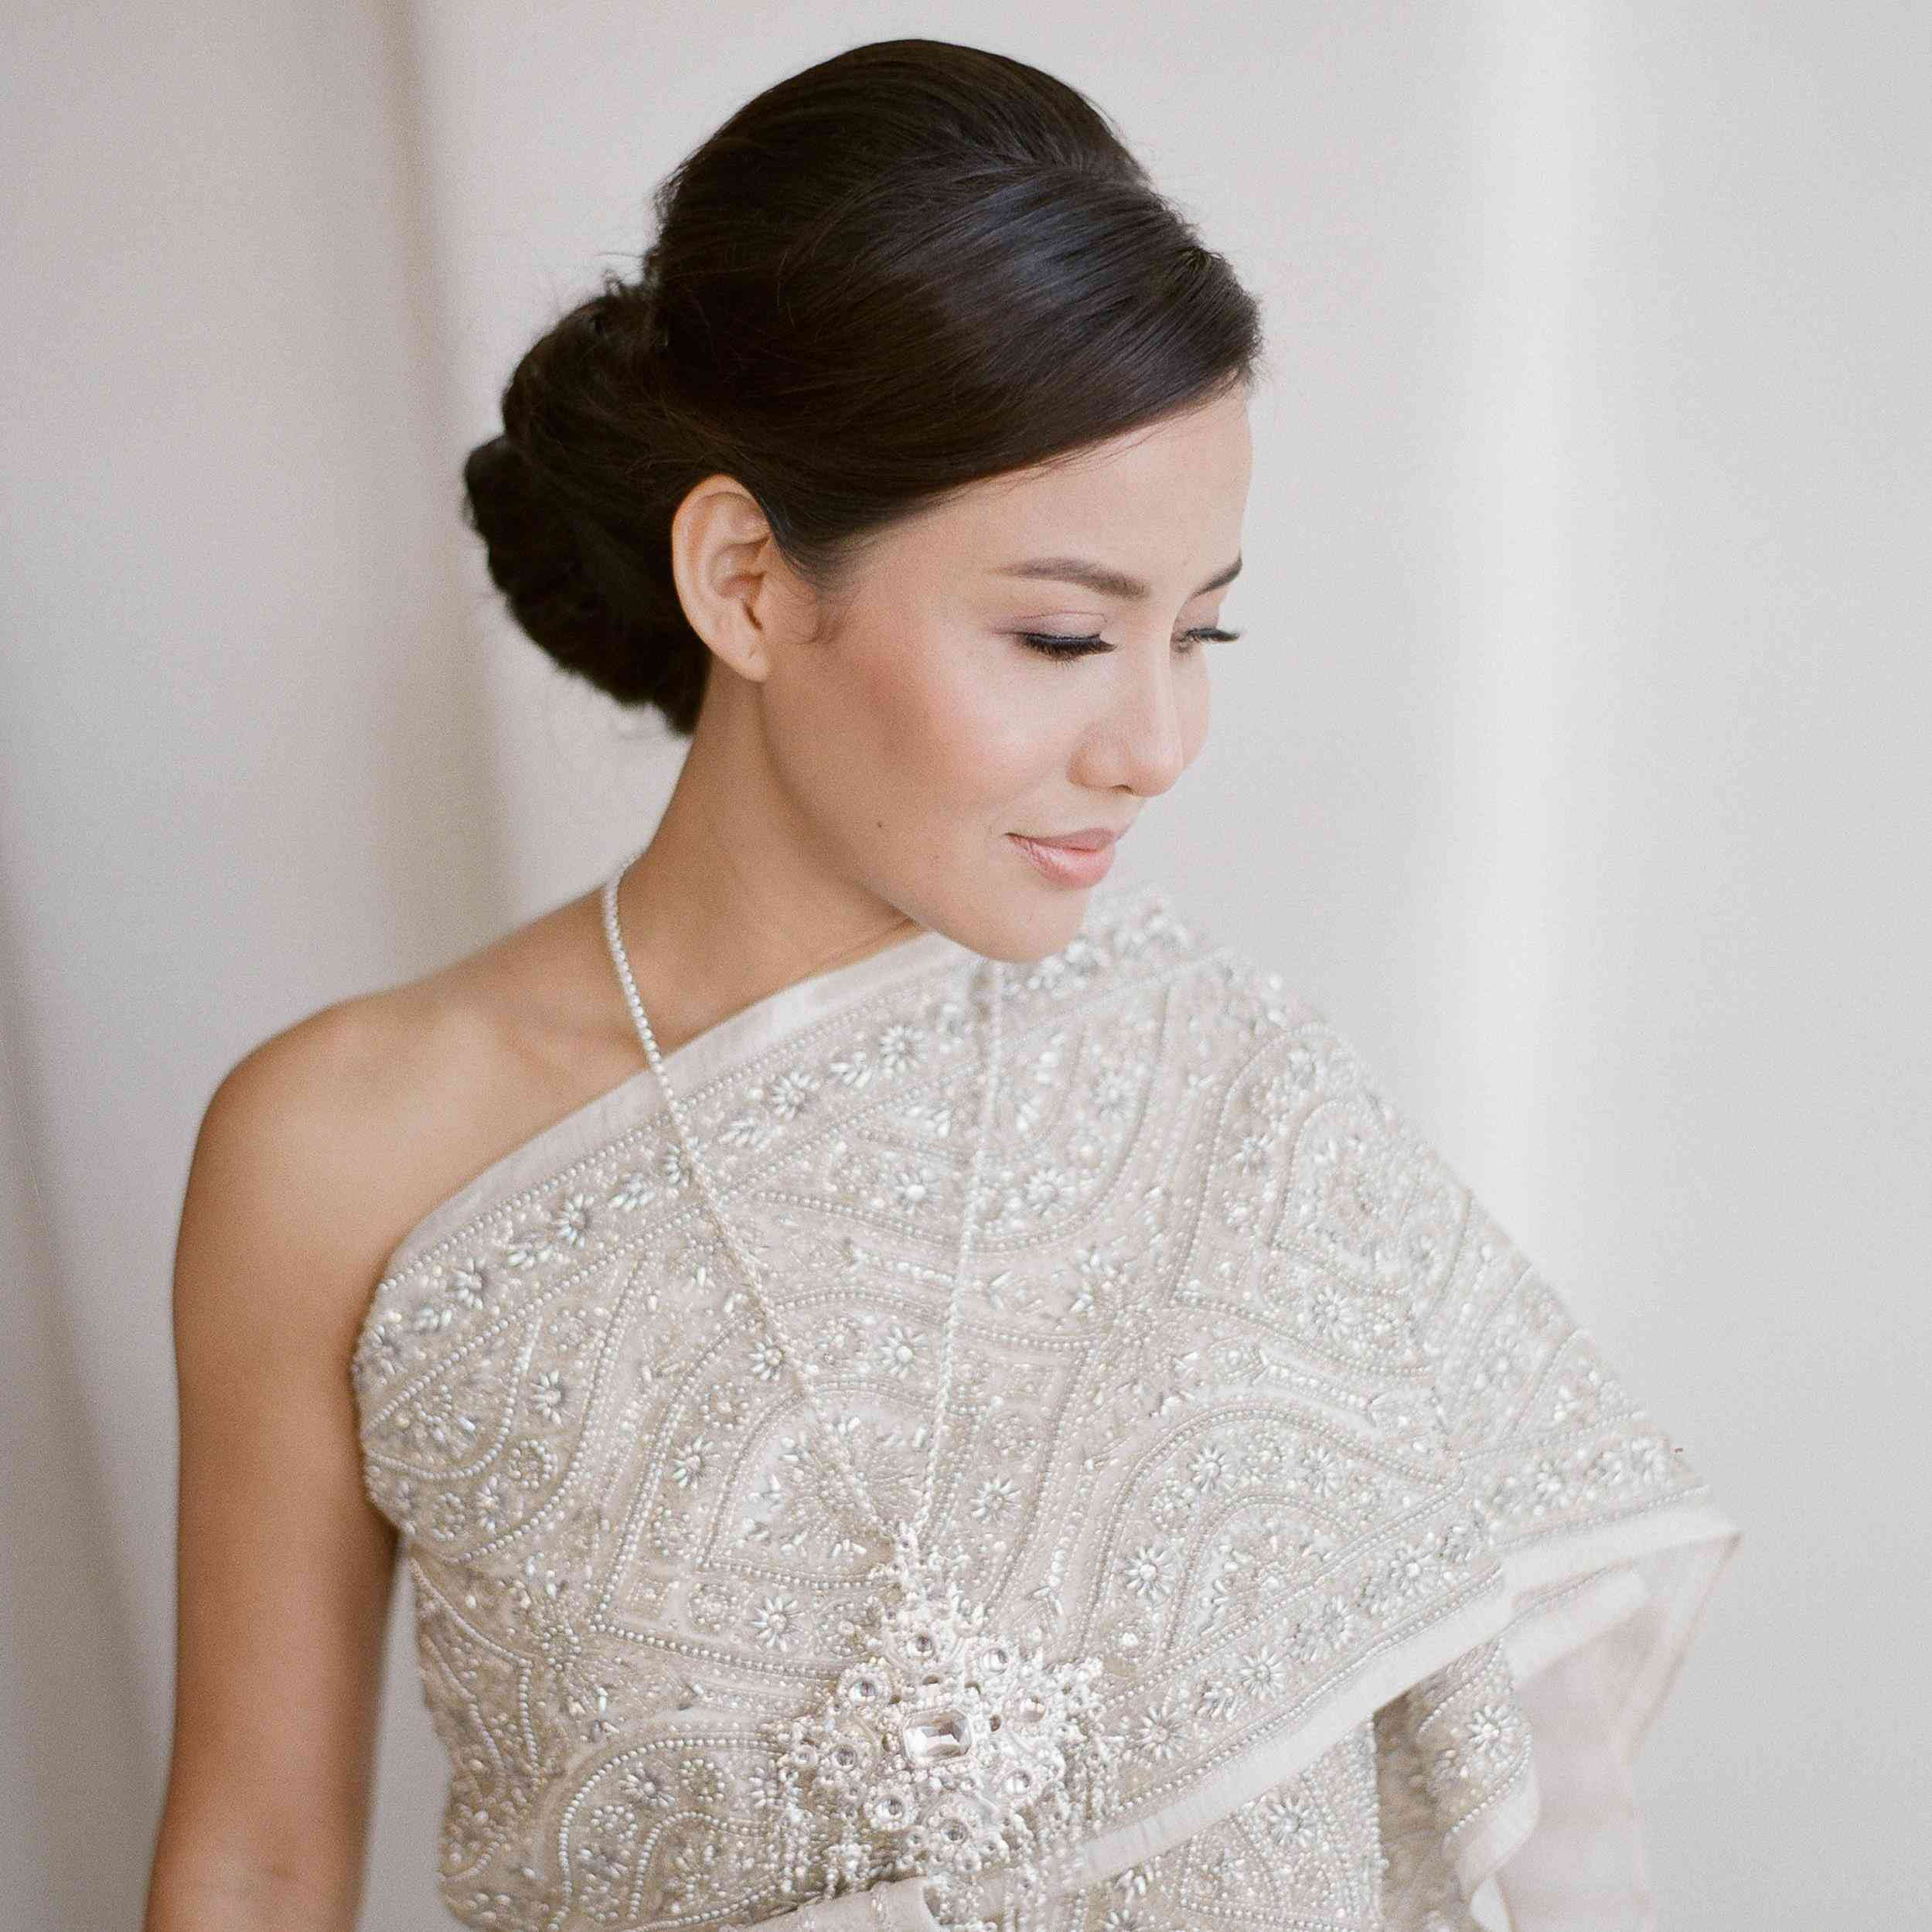 7 Bride Compliments: Here's What She Wants to Hear at Her